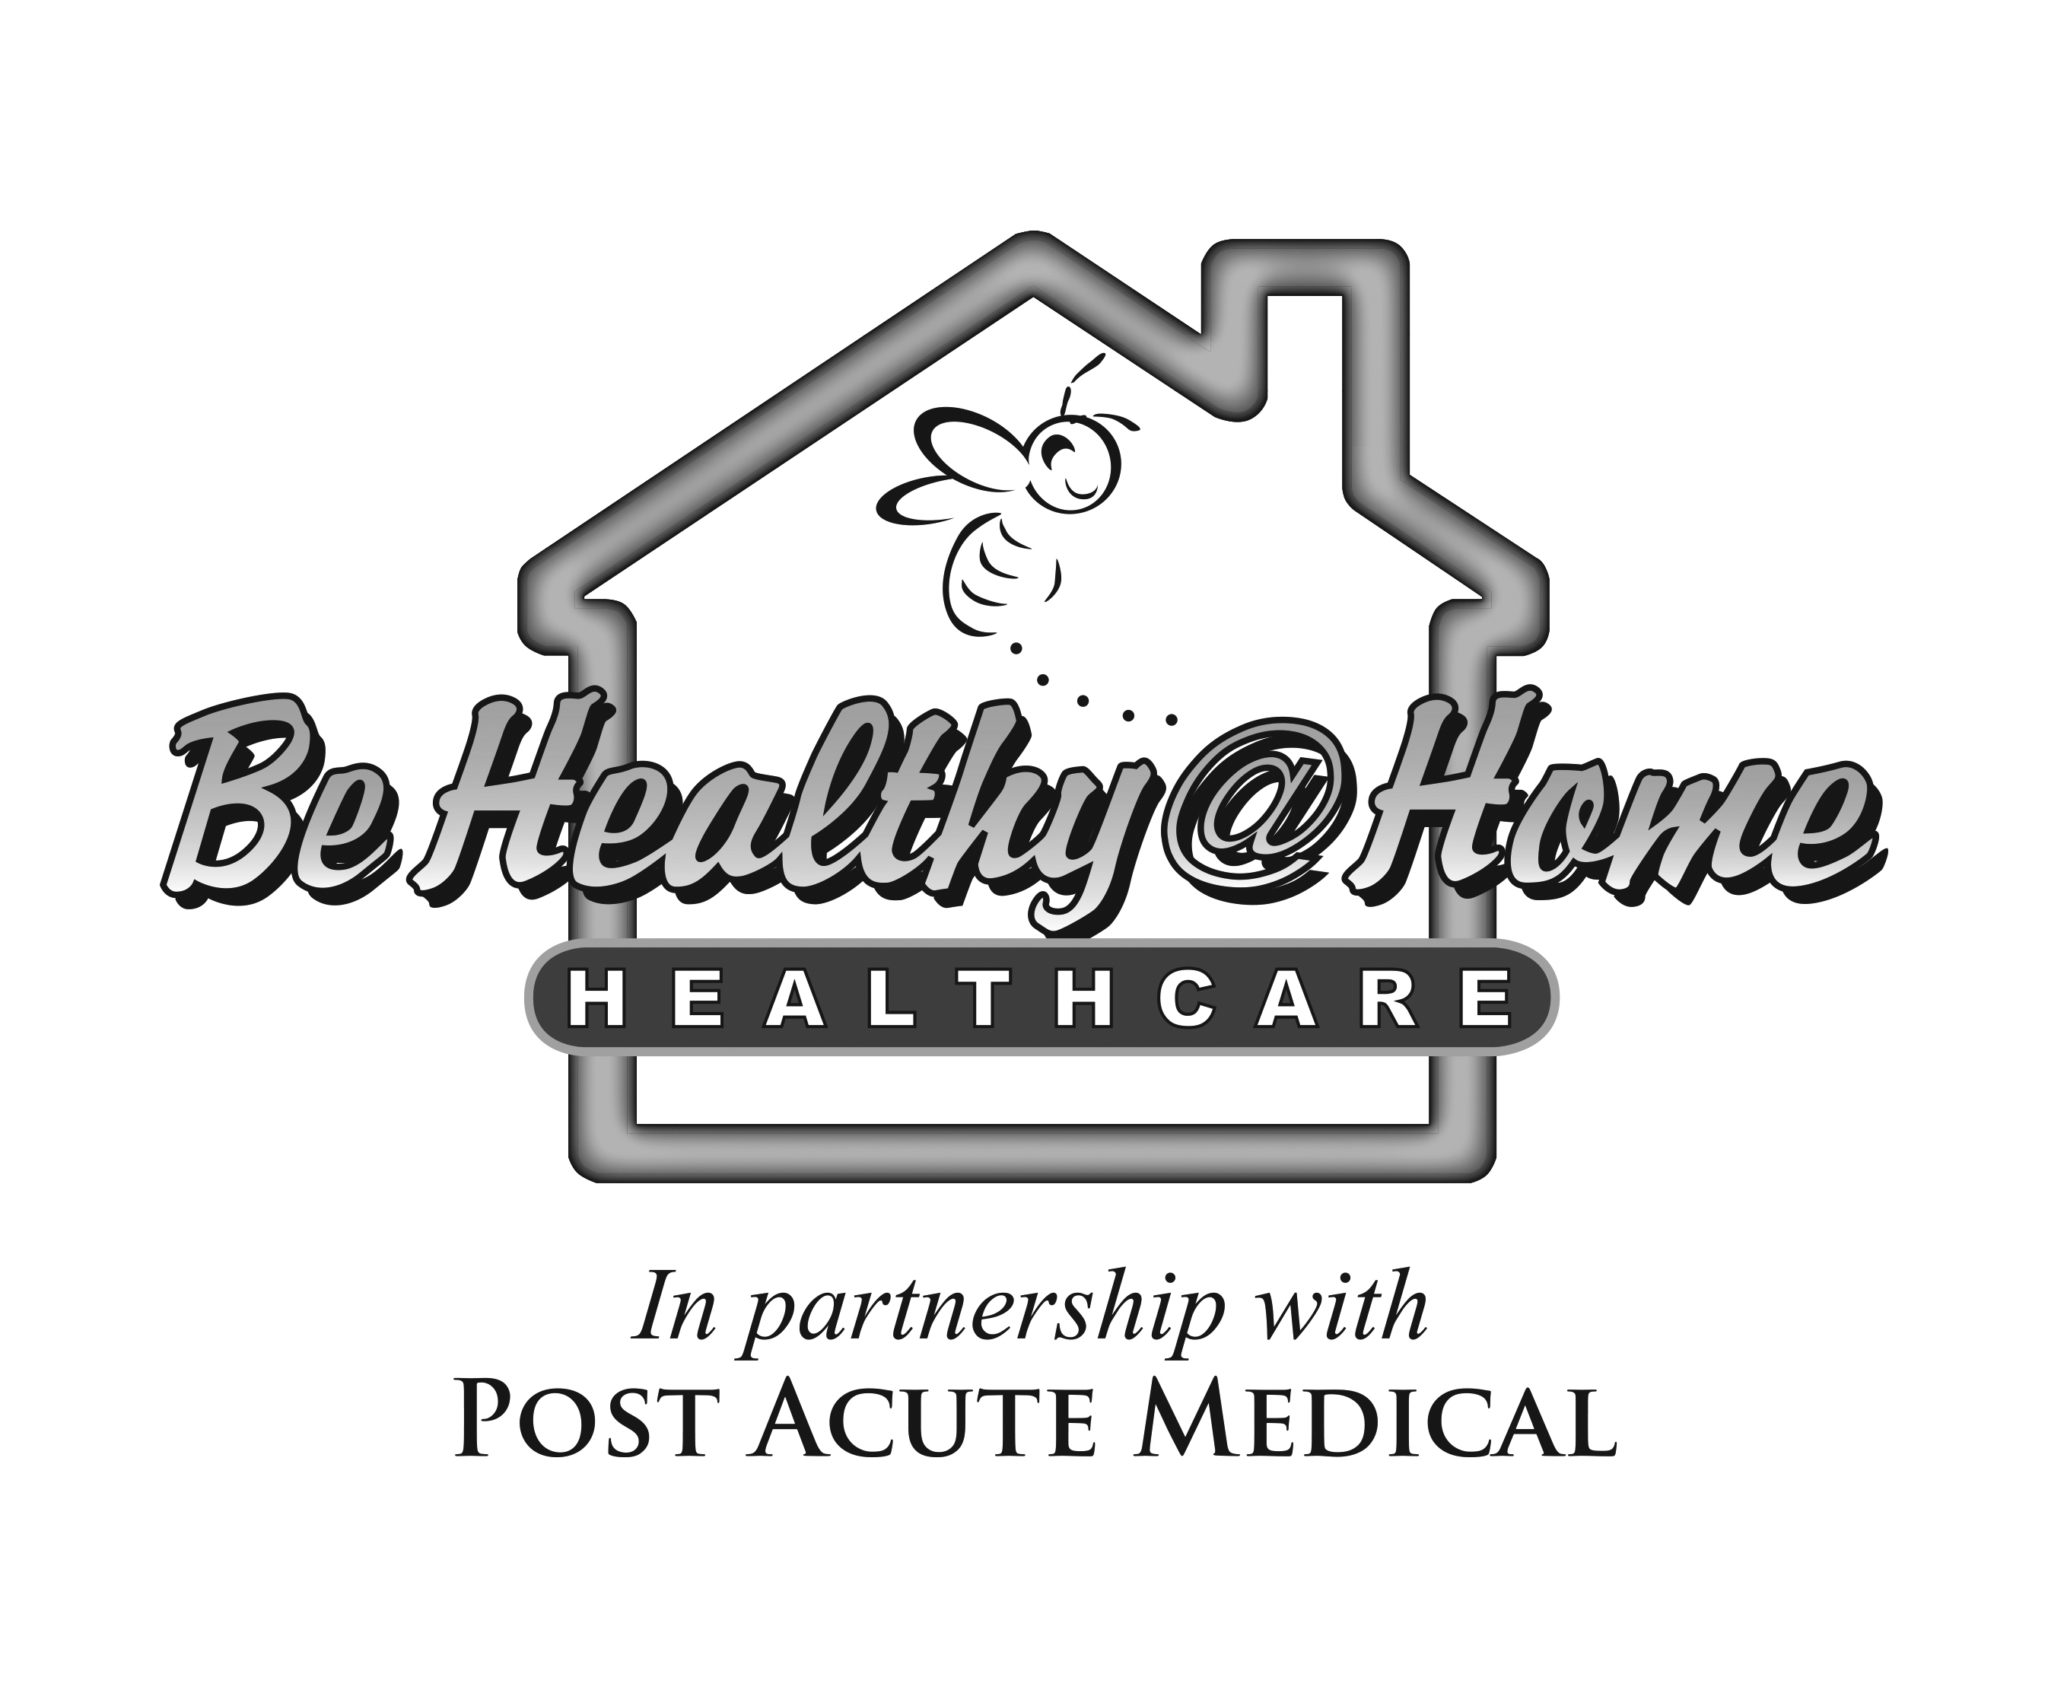 http://www.whirks.com/wp-content/uploads/2021/01/Be-Healthy-at-Home-Black-and-White-scaled.jpg